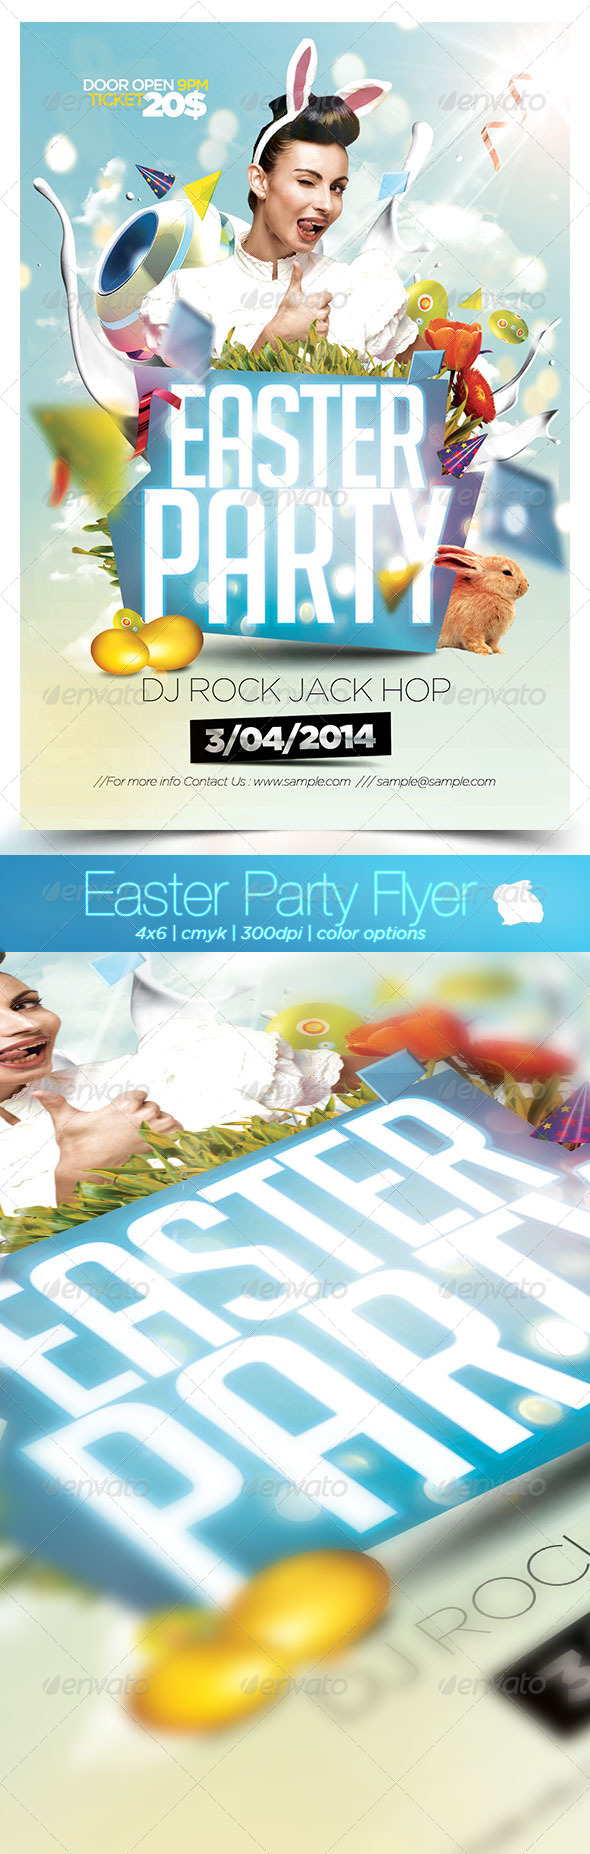 Easter Party Flyer 2014 - Flyers Print Templates